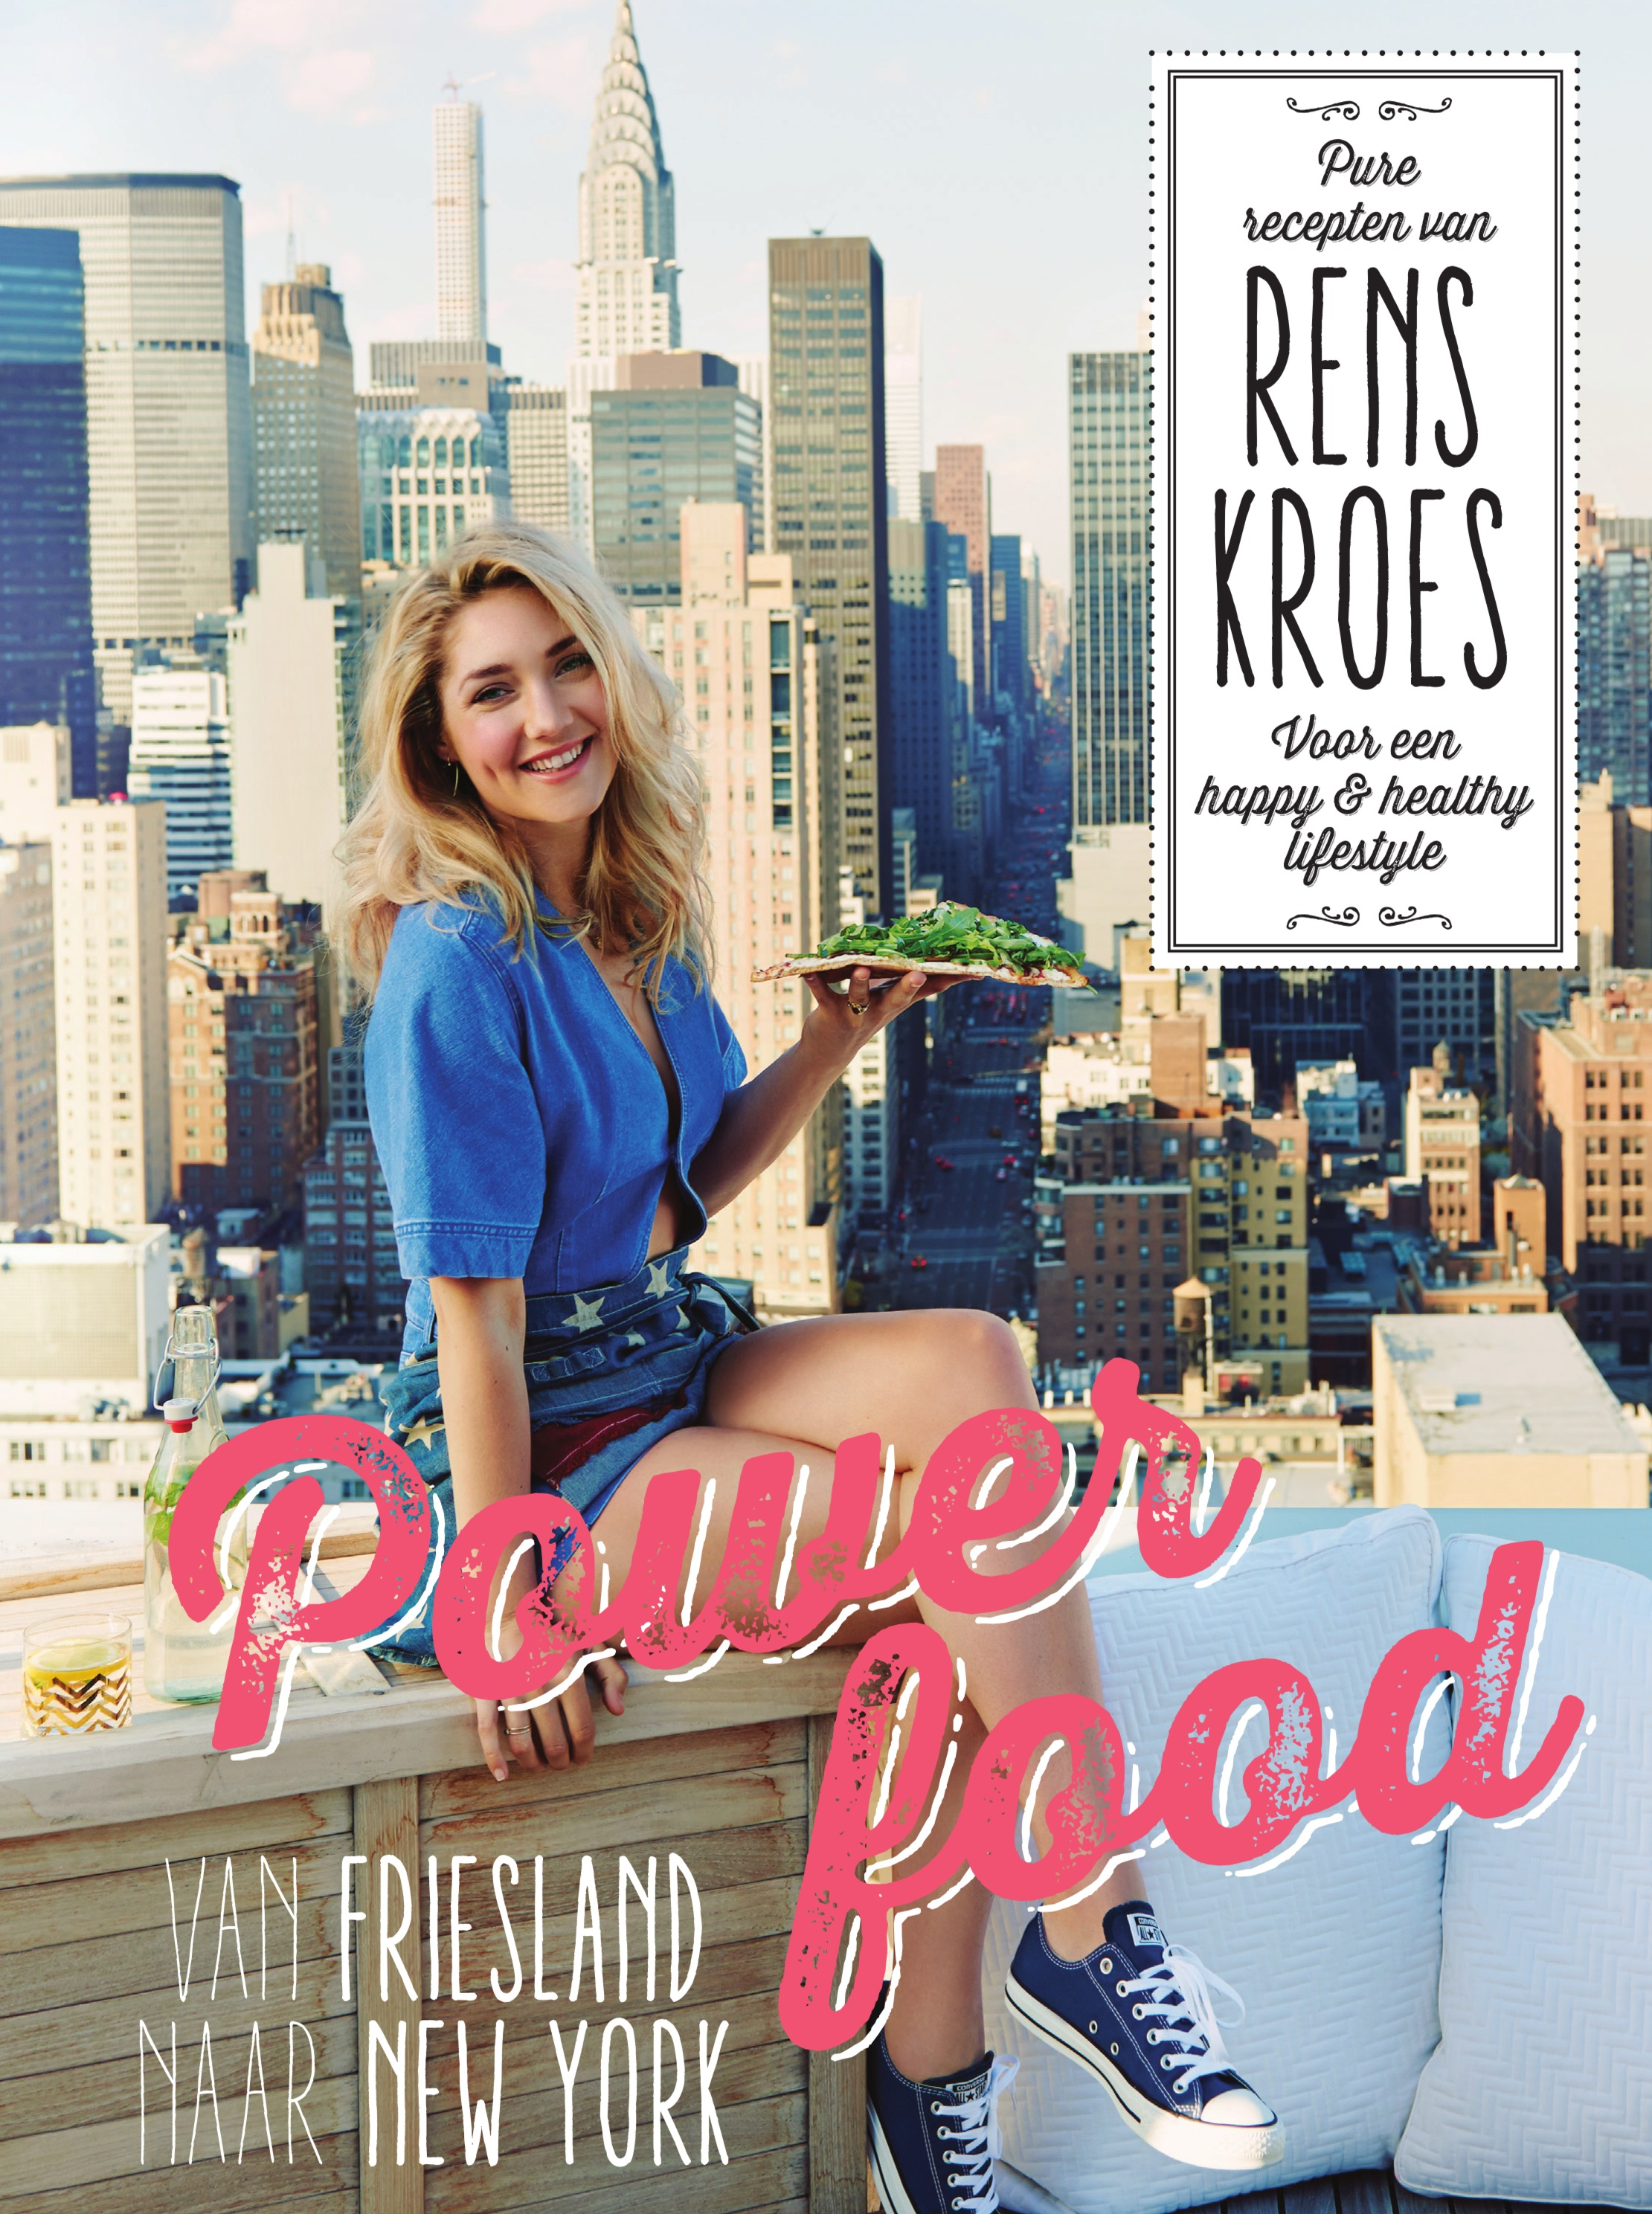 Powerfood – van Friesland naar New York – Rens Kroes